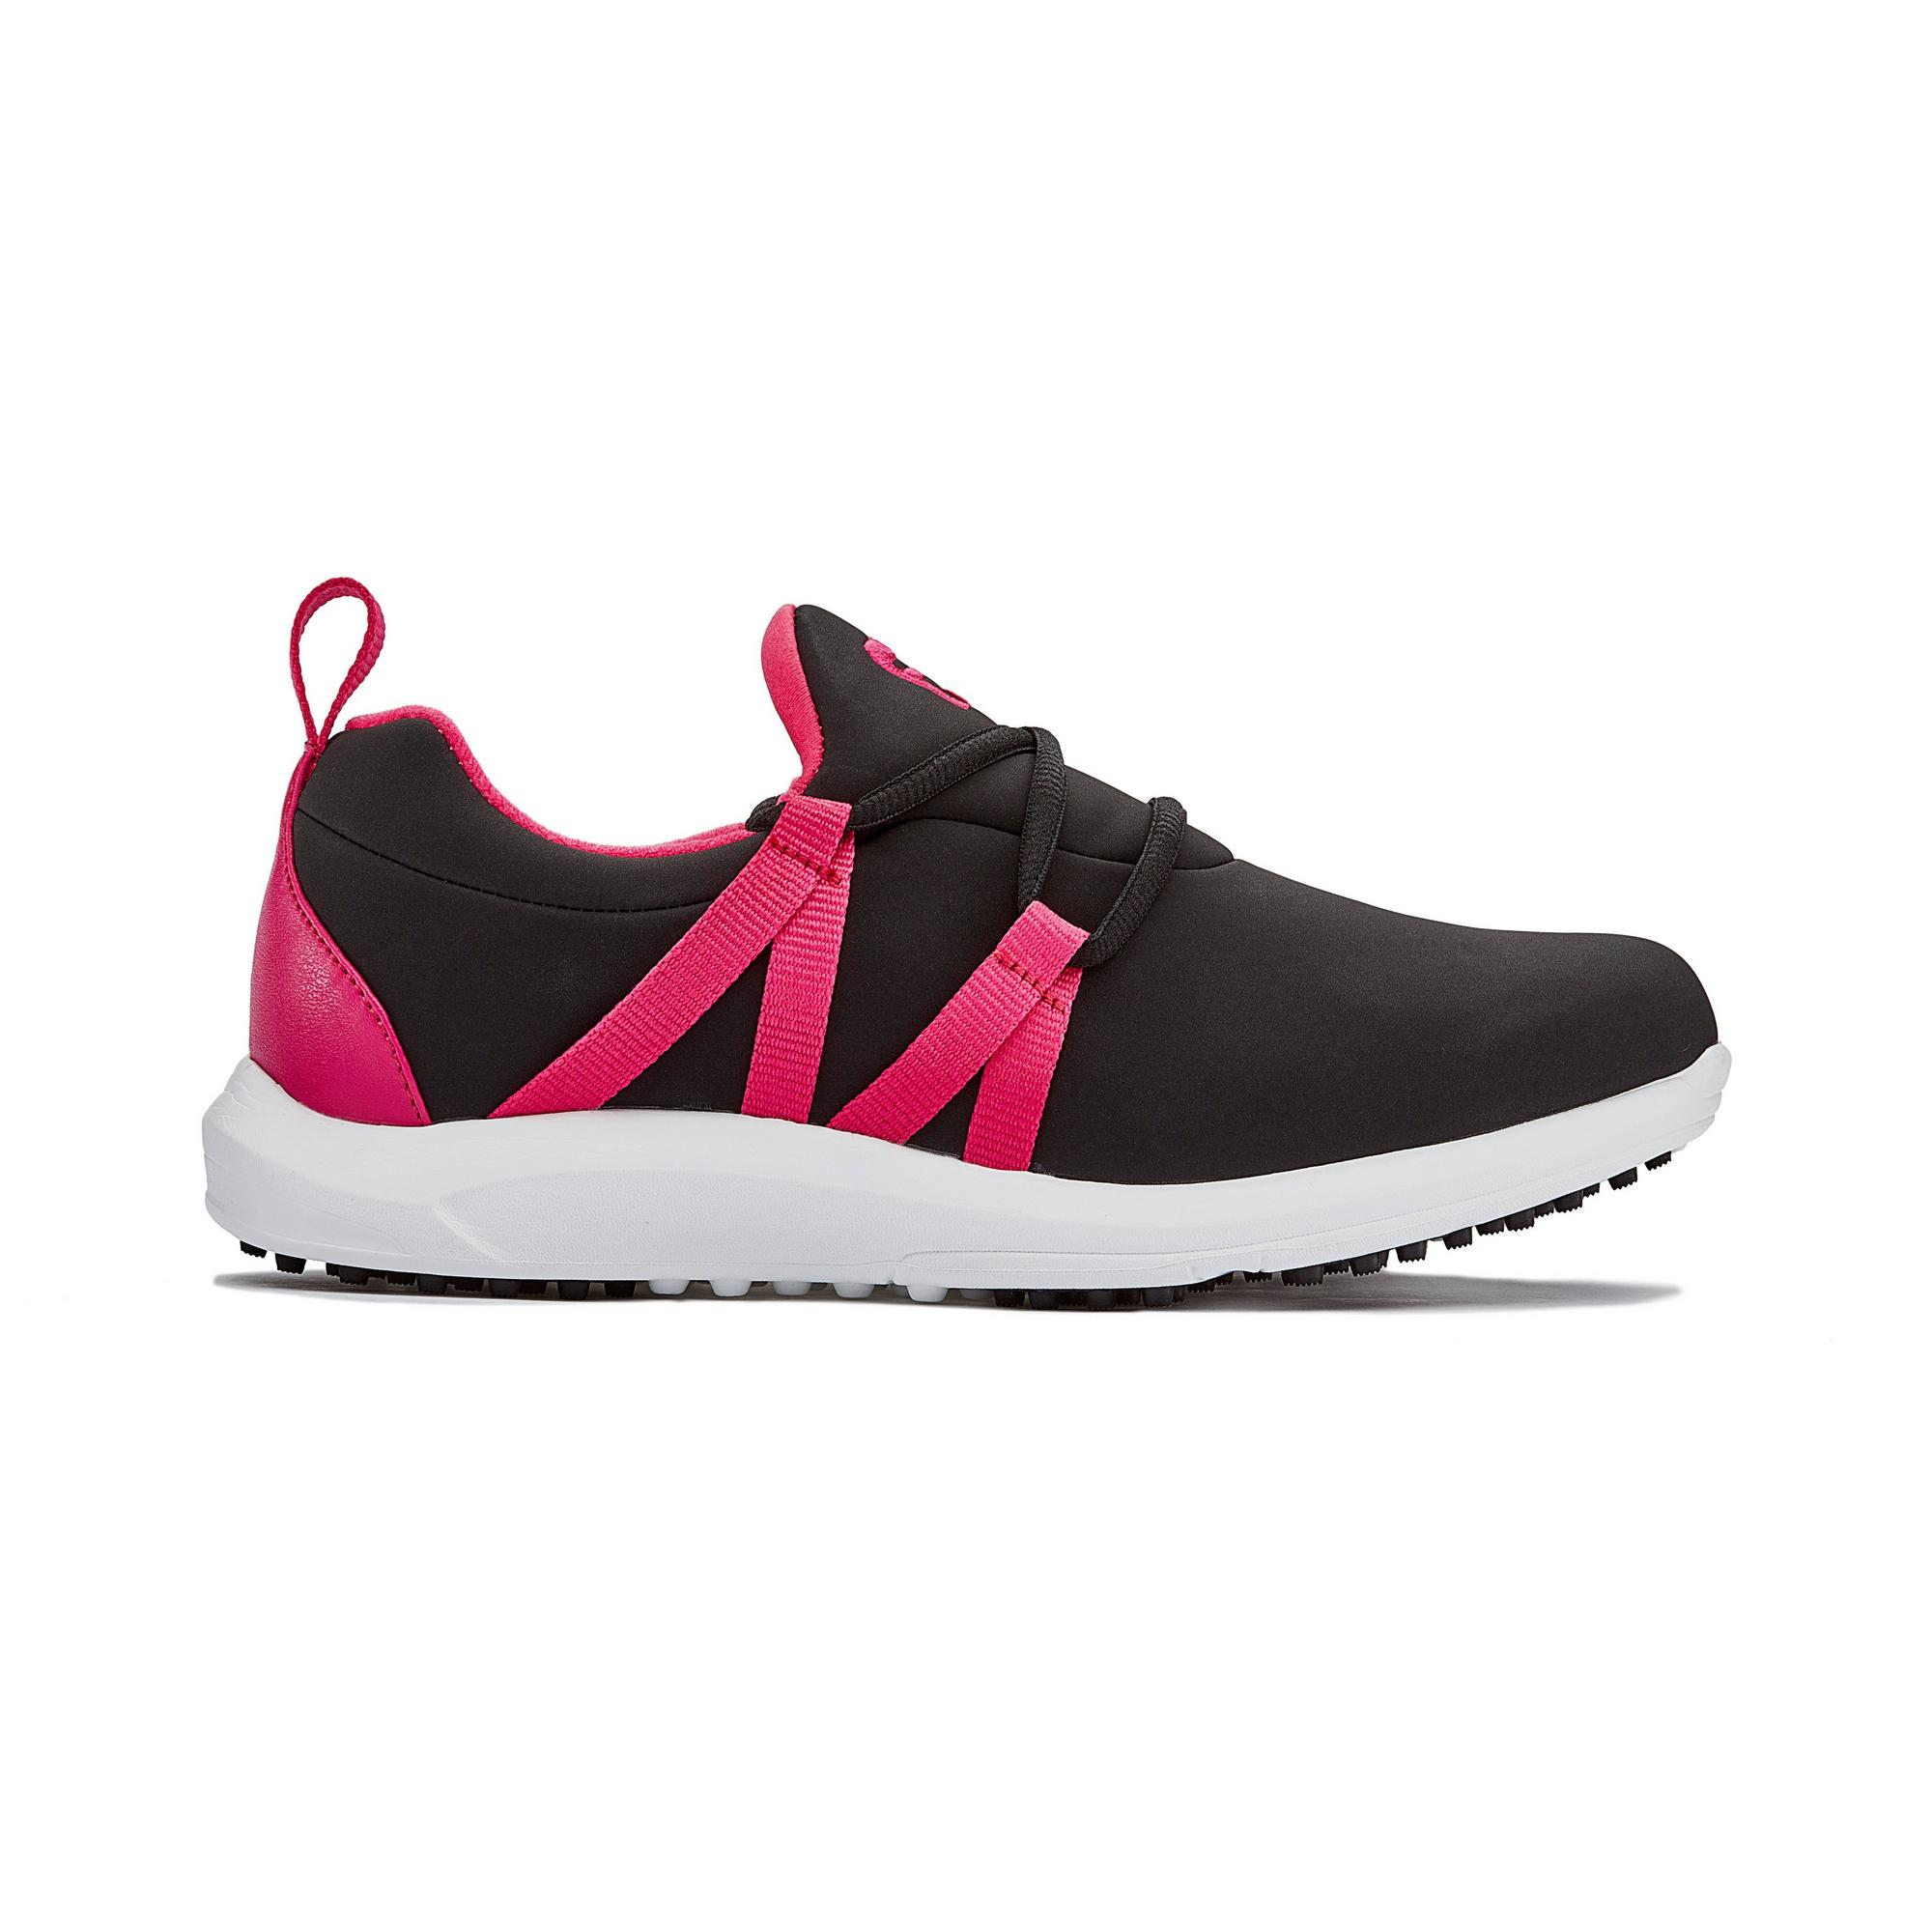 Women's FJ Leisure Slip On Spikeless Shoe - BLACK/PINK